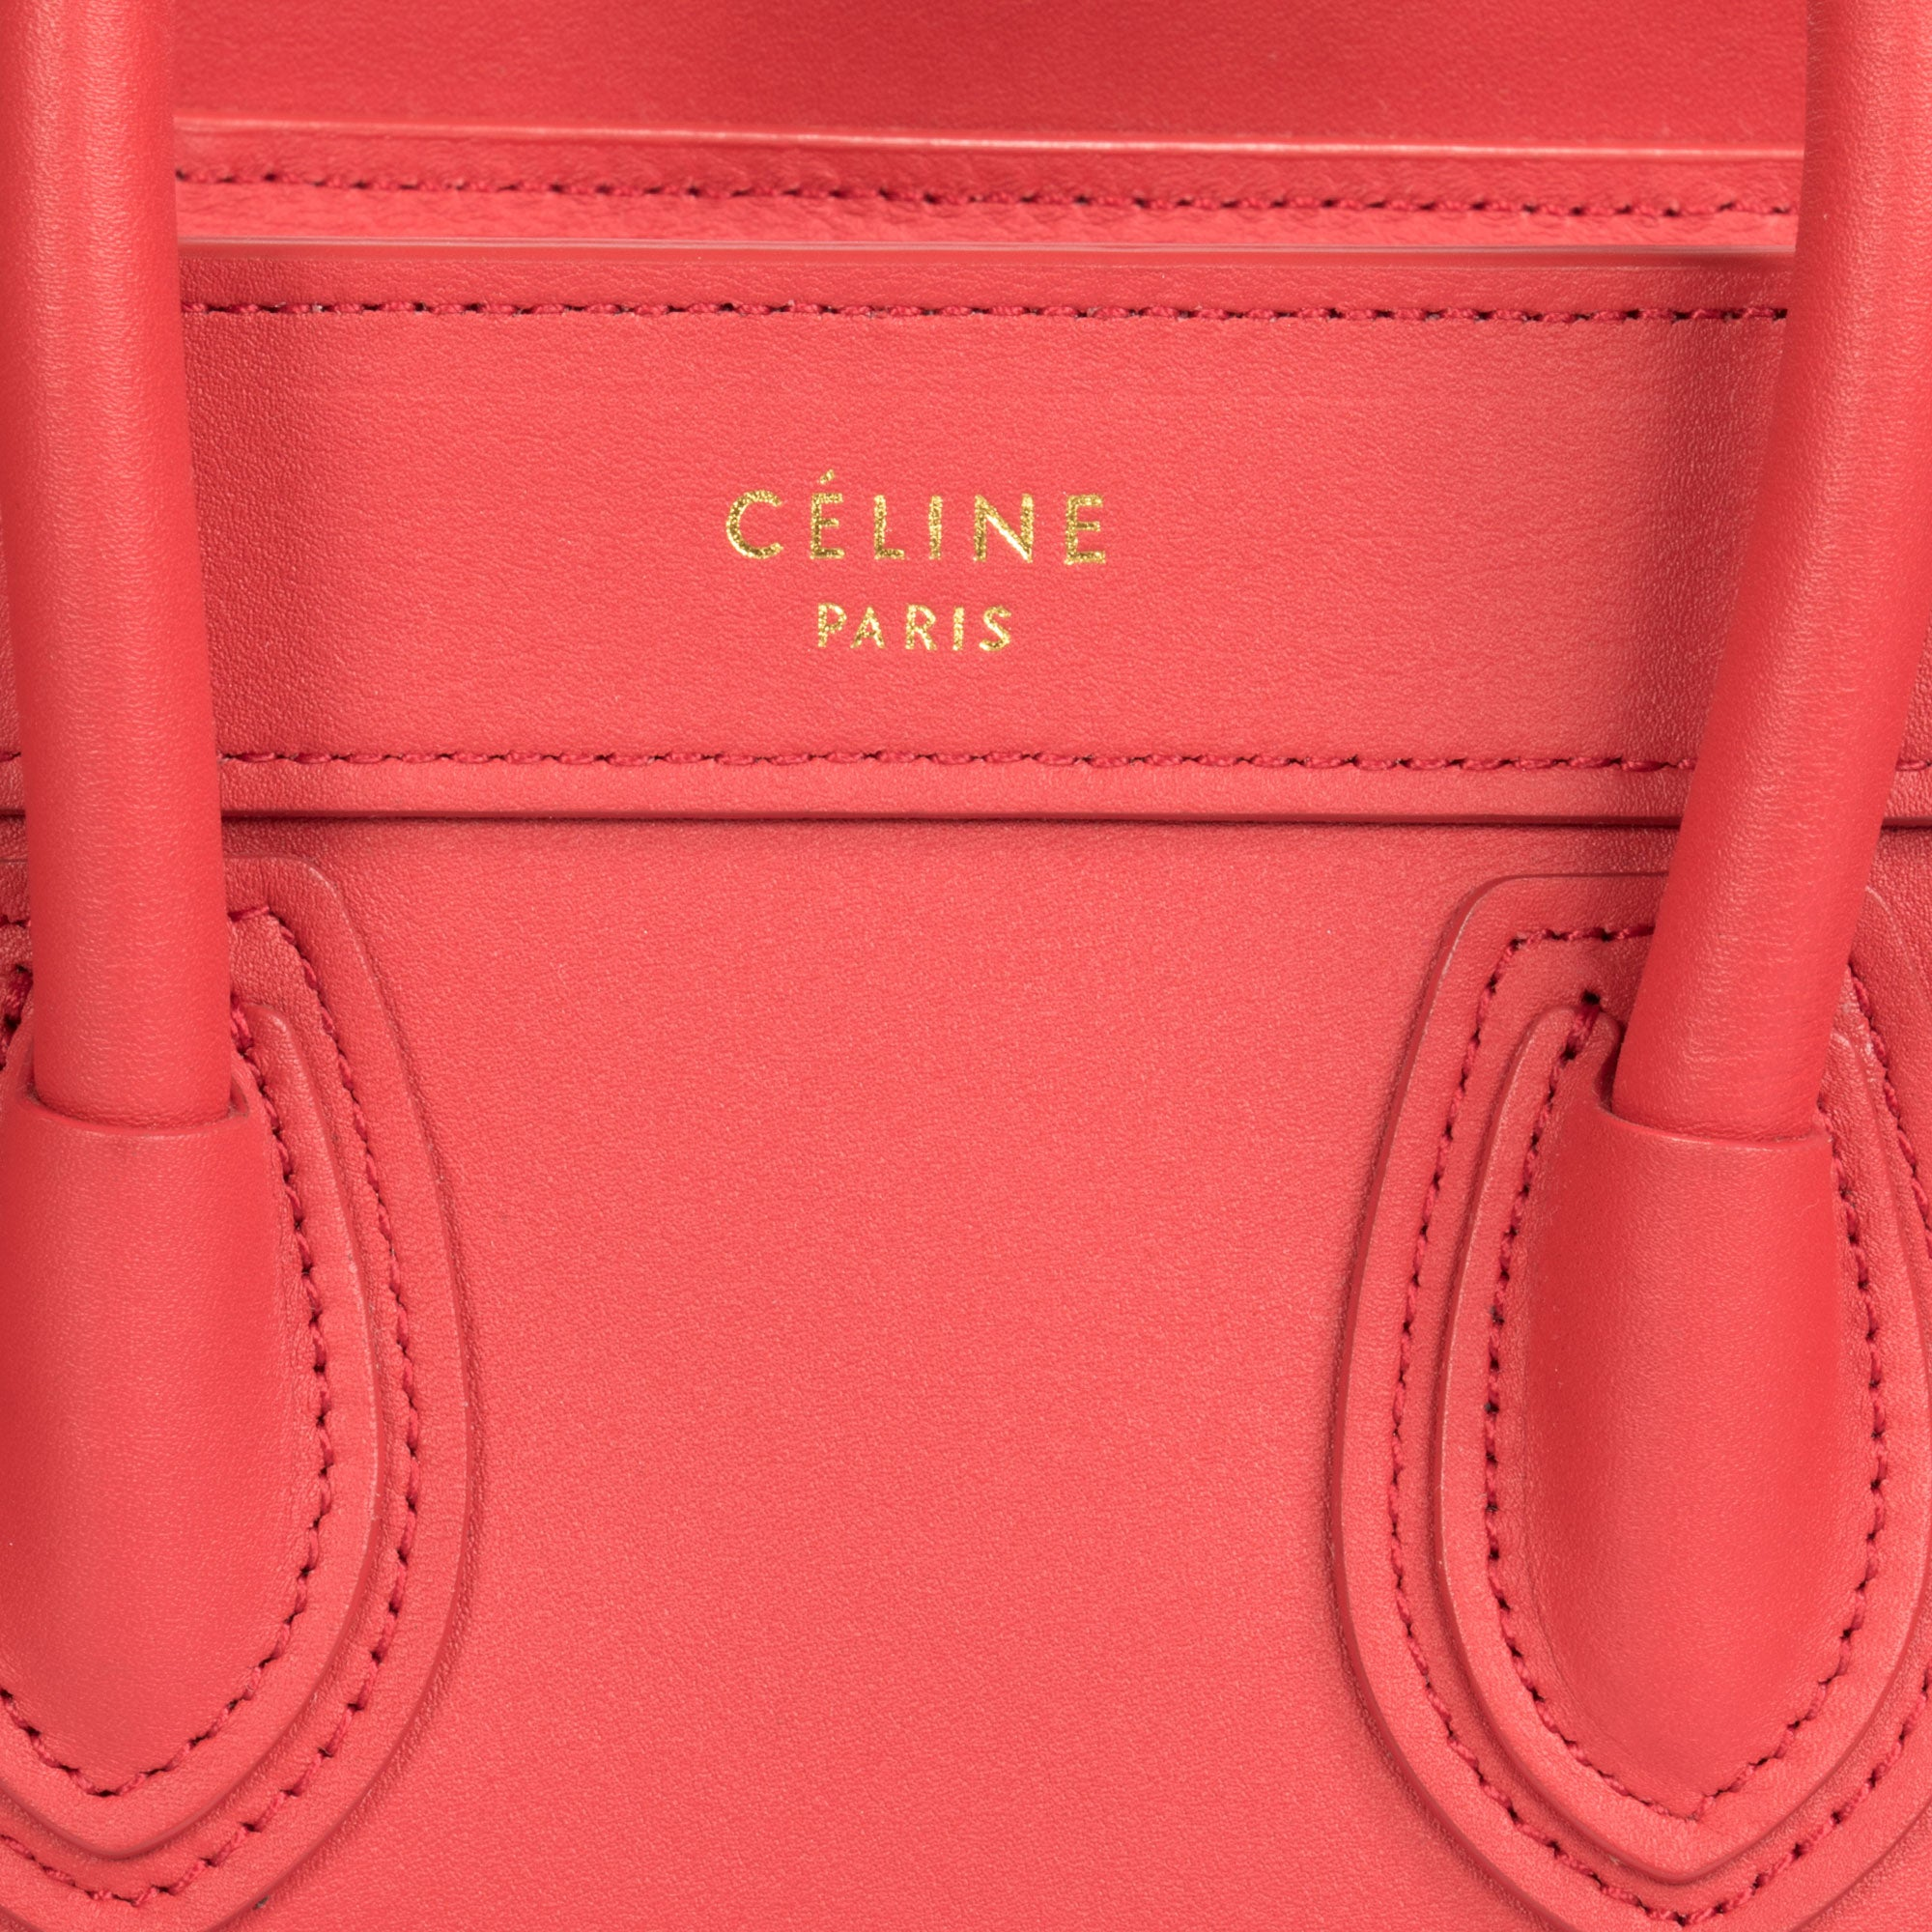 Céline Nano Luggage Bag in Smooth Red Calfskin Leather